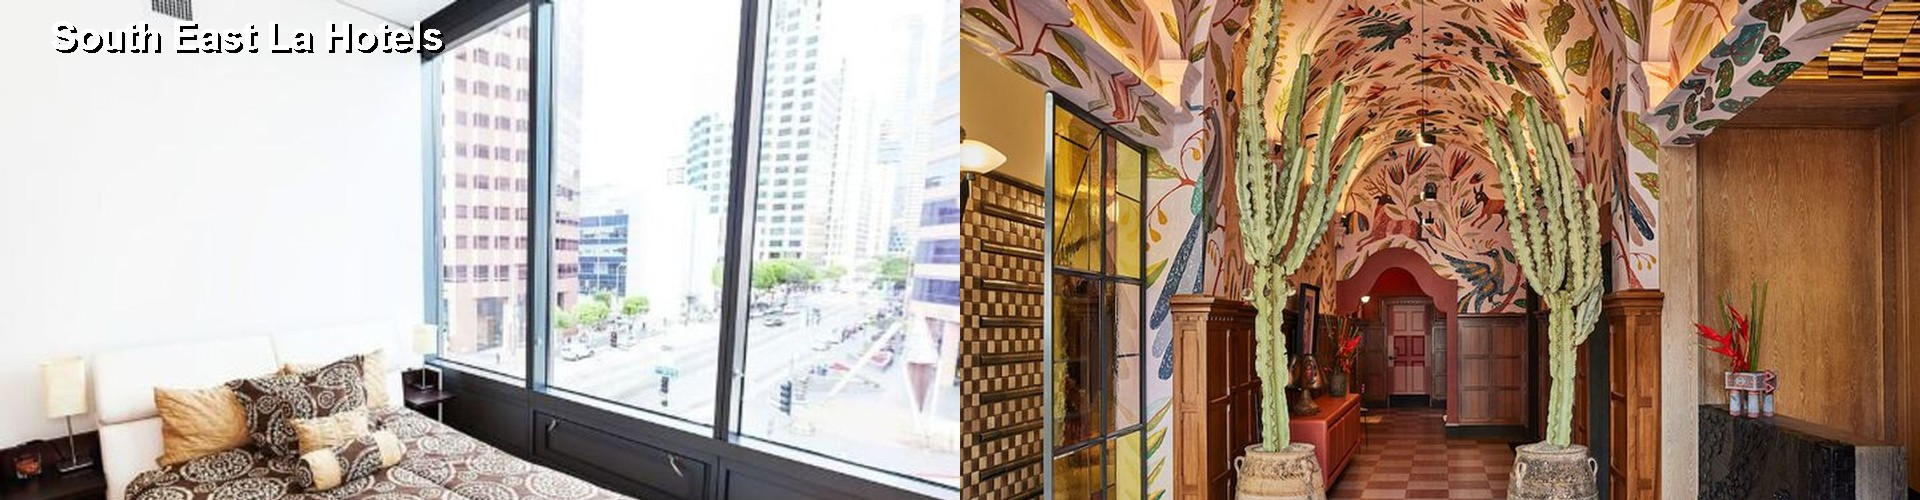 4 Best Hotels near South East La